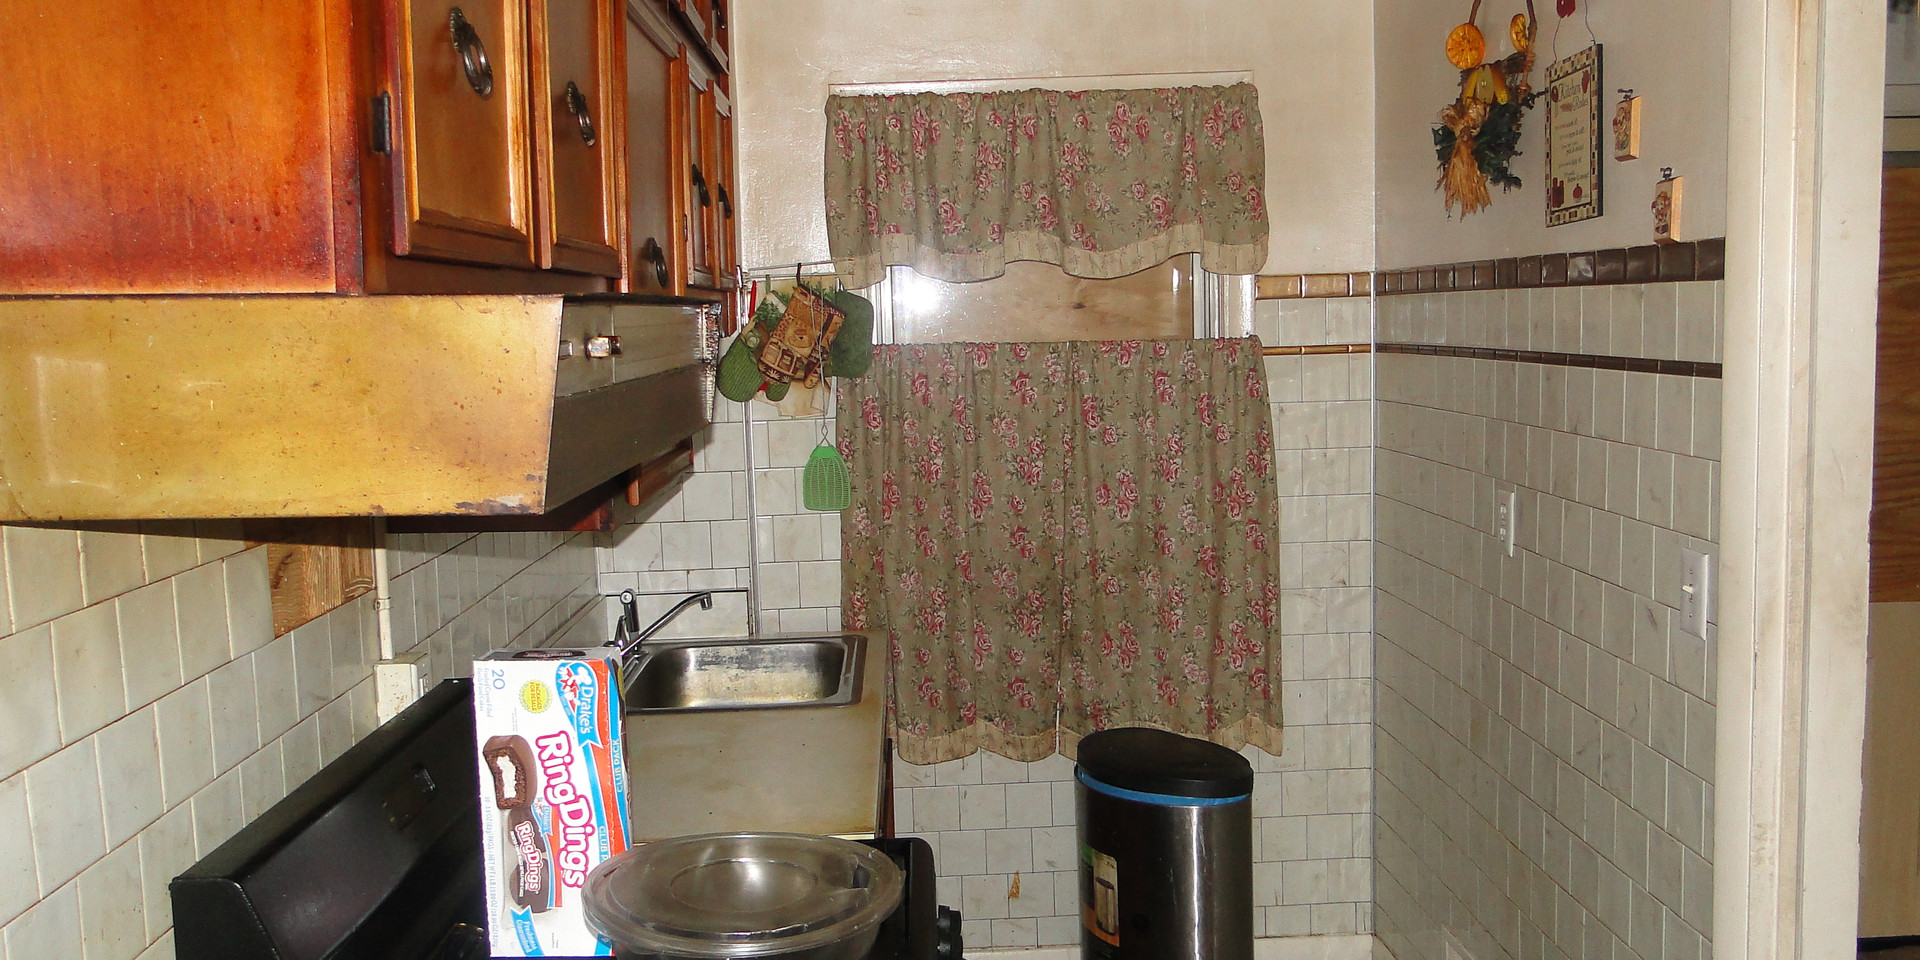 07 - Kitchen.JPG